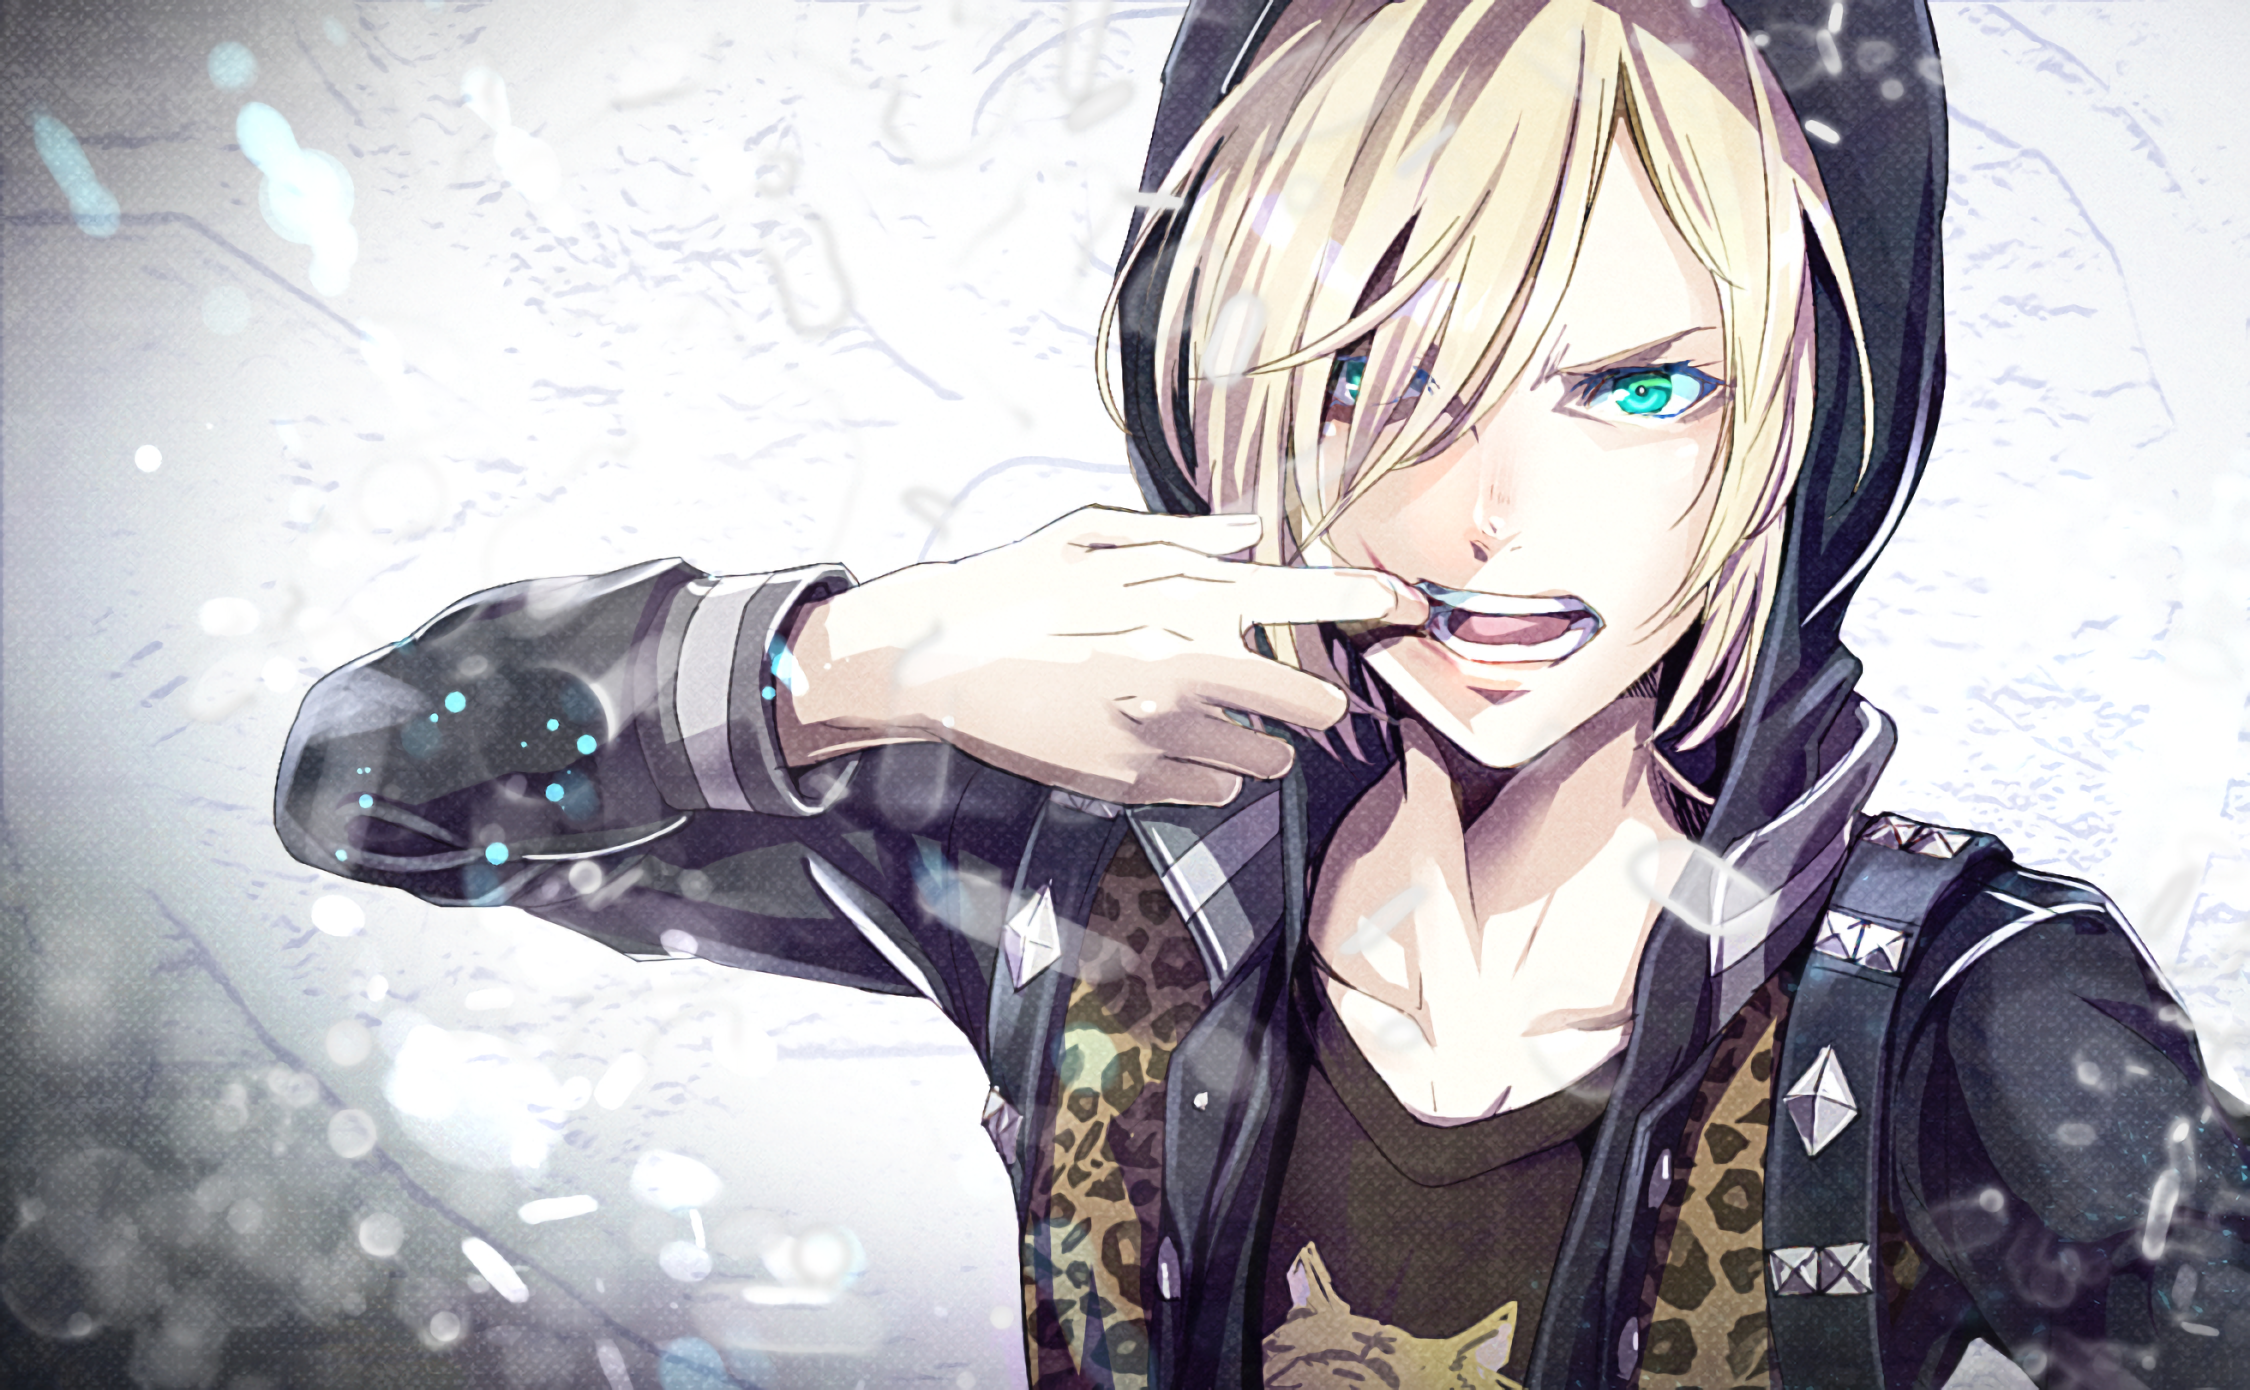 Hd Wallpaper - Yuri On Ice Yurio , HD Wallpaper & Backgrounds